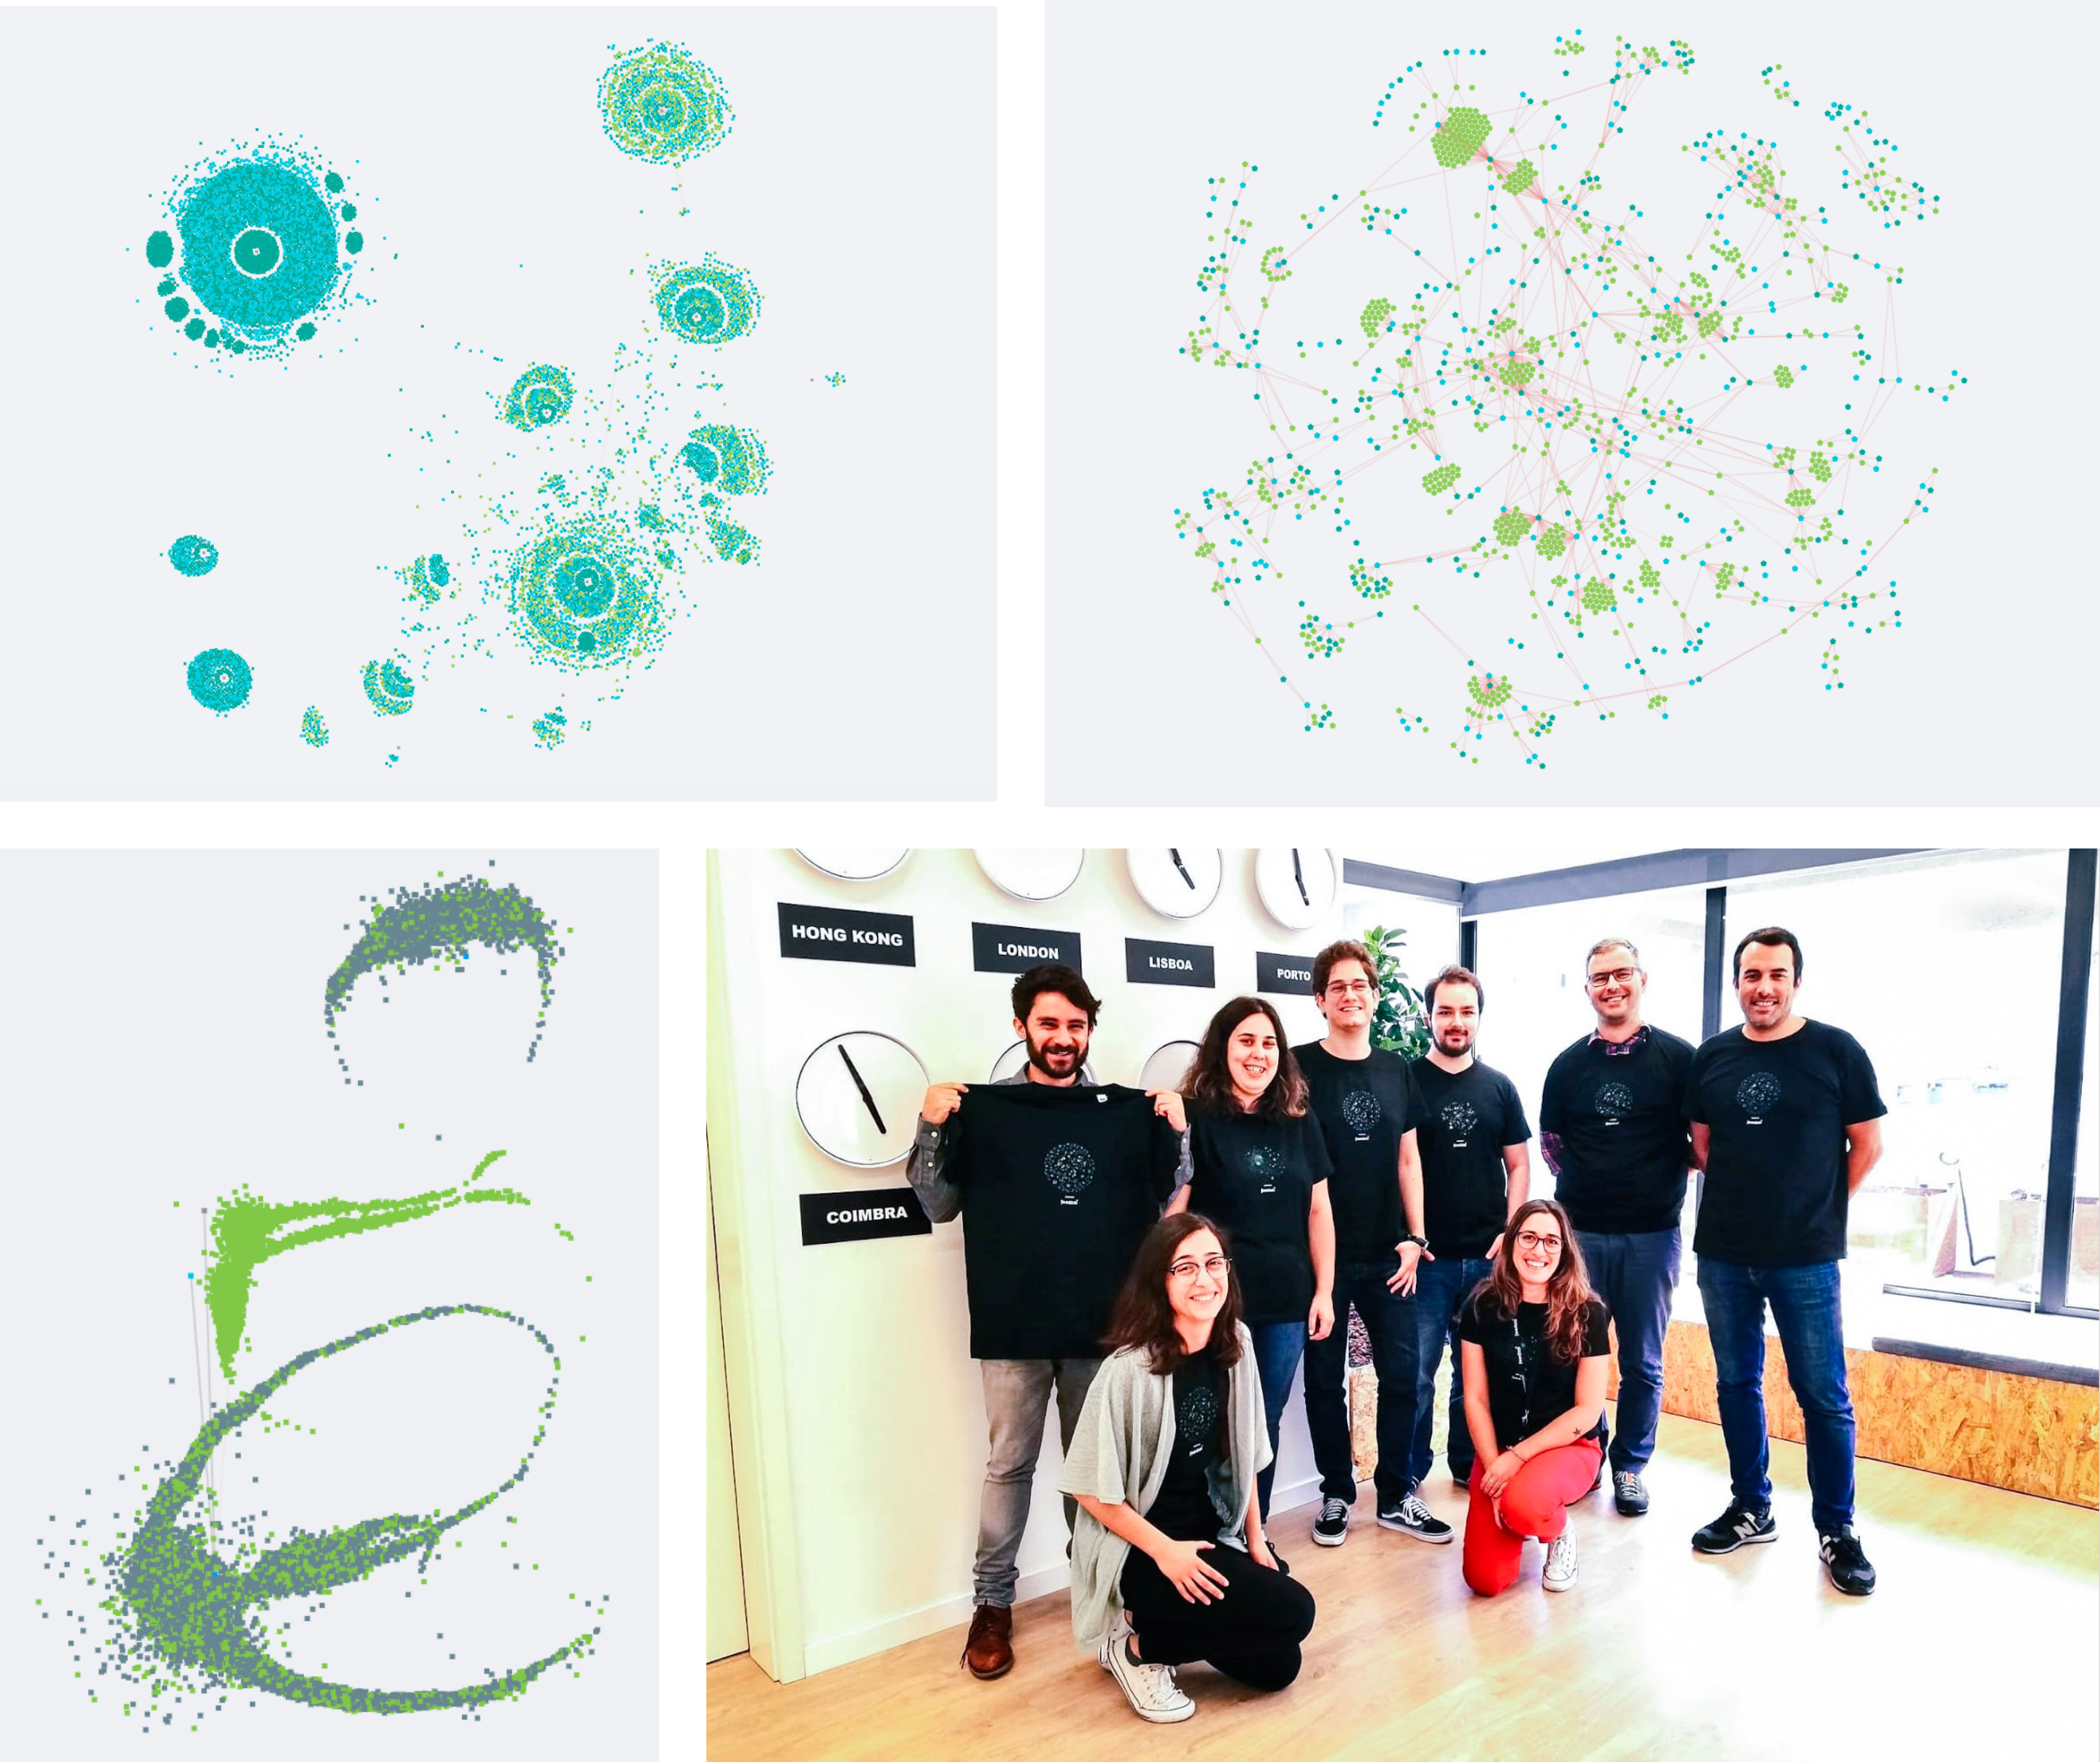 3 pictures of Genome data art, and a picture of people wearing matching shirts